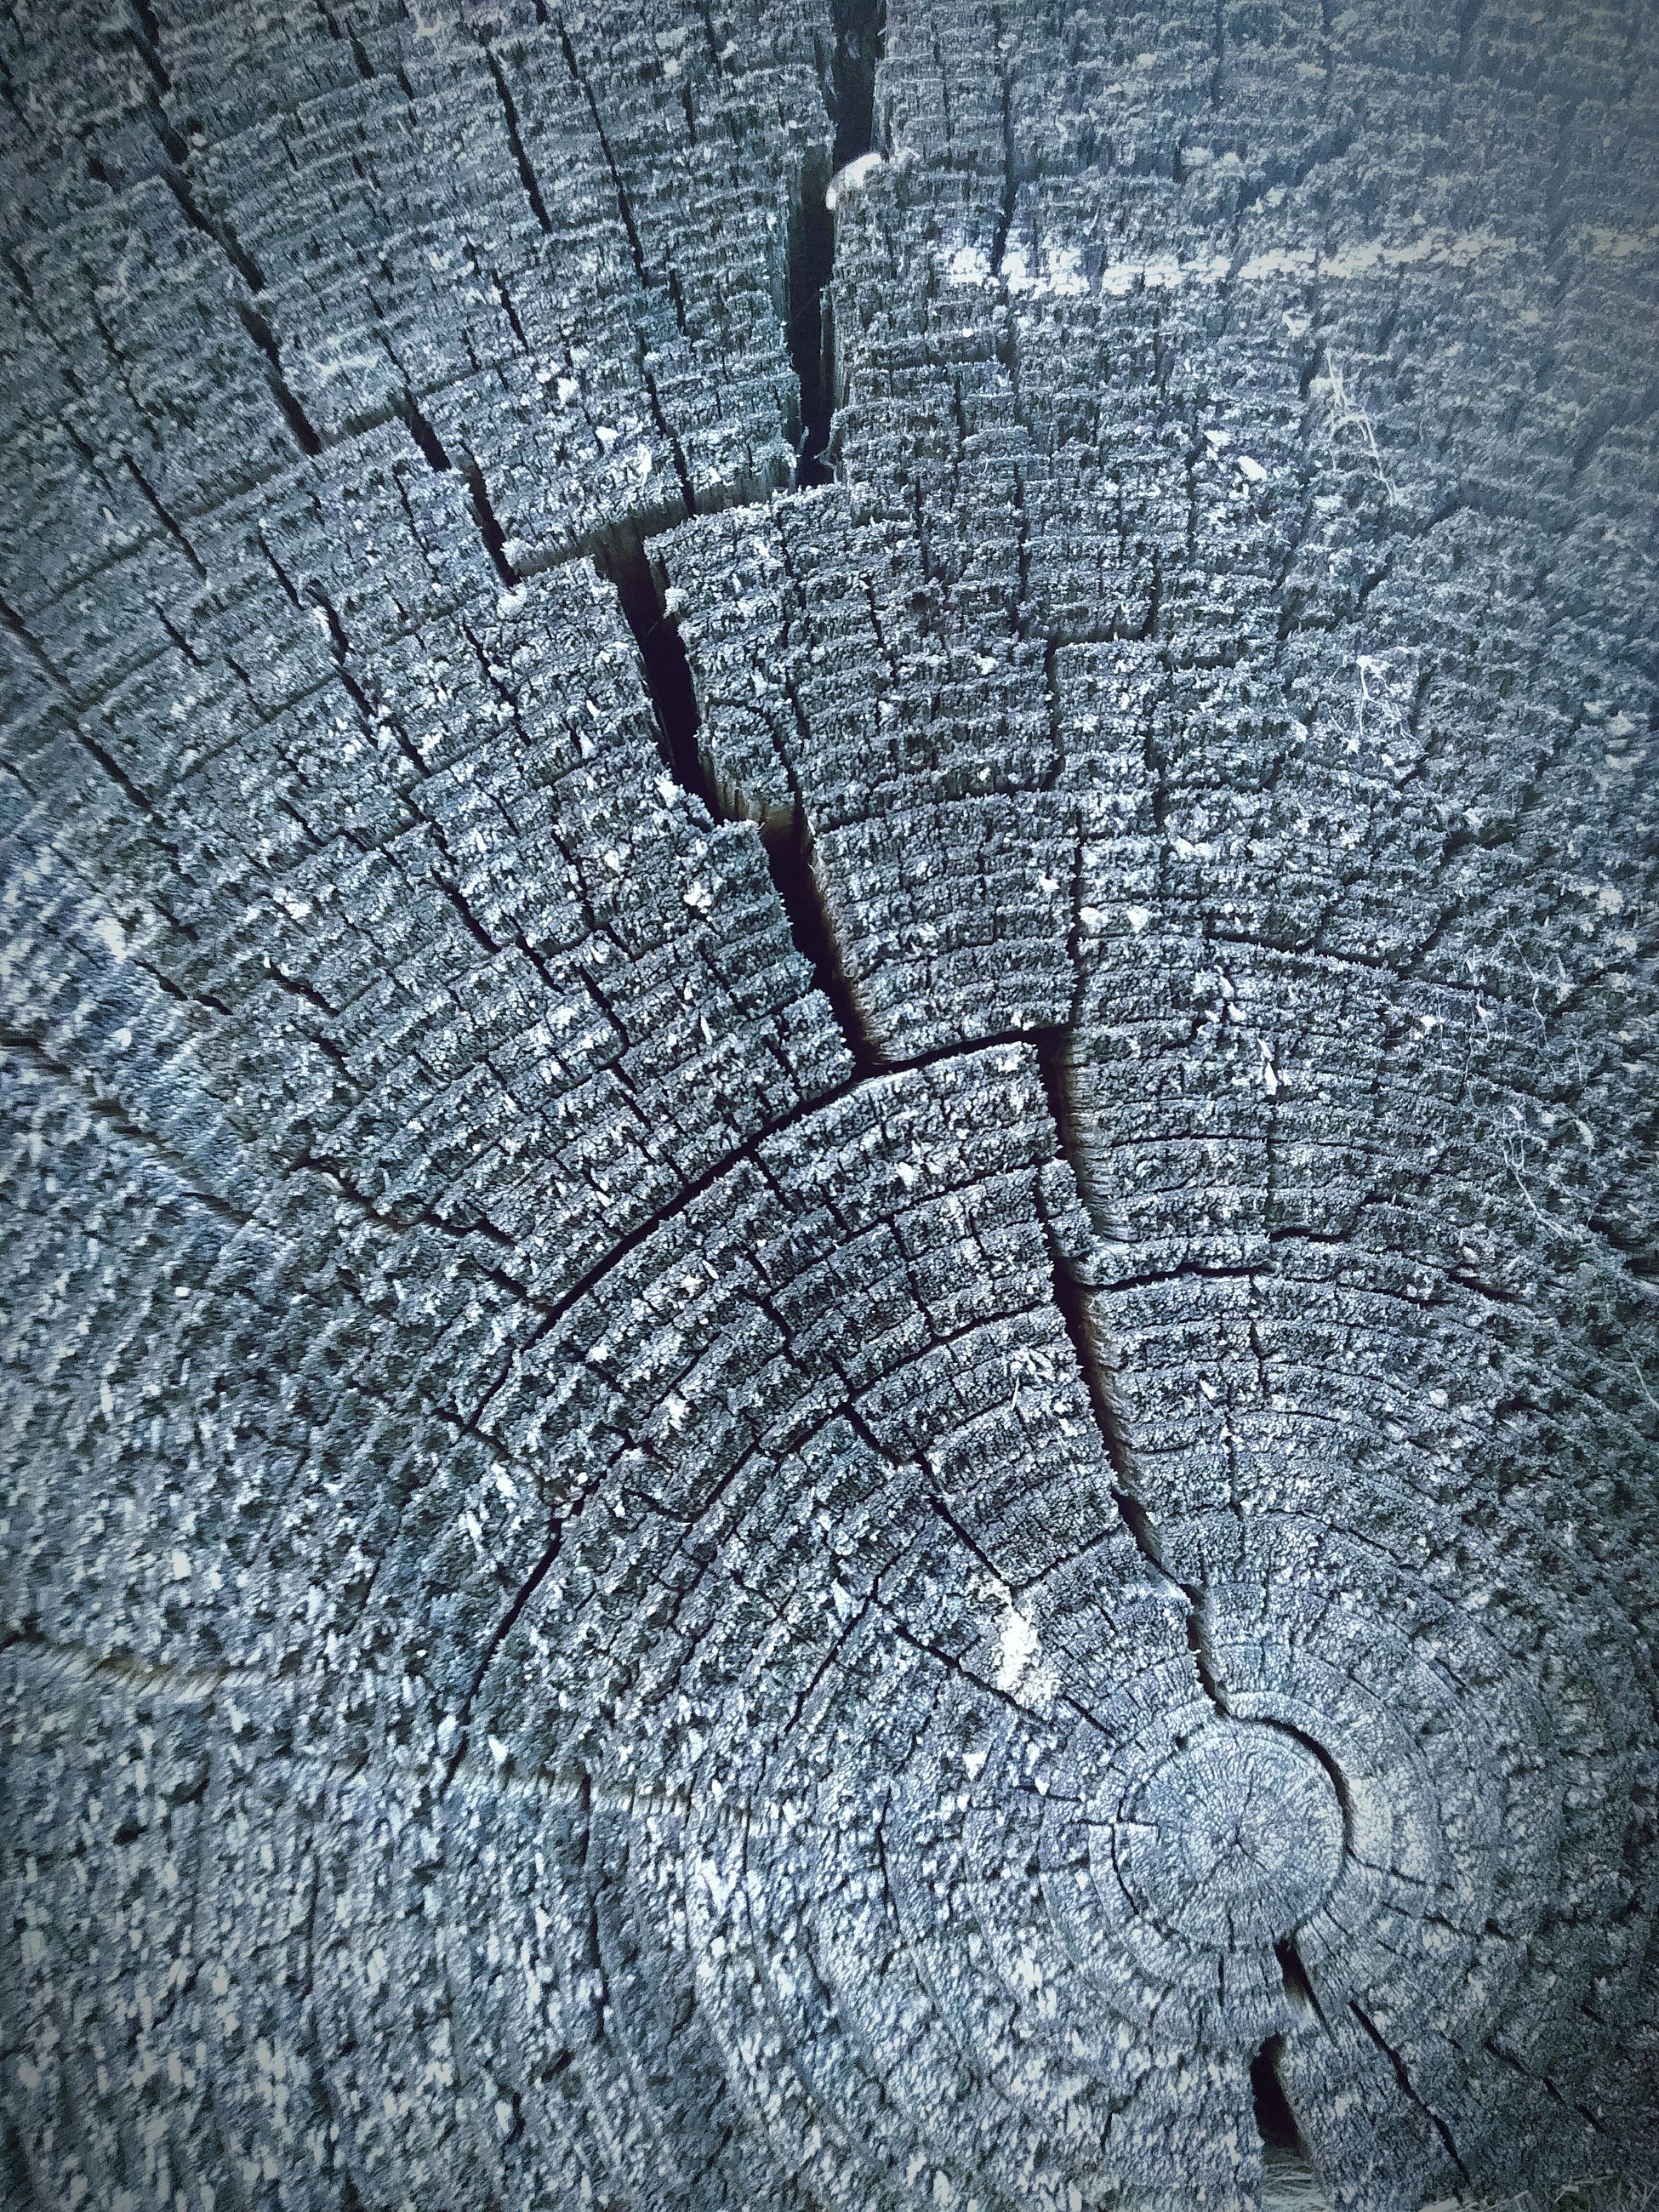 textured, wood - material, cracked, tree ring, close-up, tree stump, backgrounds, pattern, outdoors, full frame, no people, day, nature, concentric